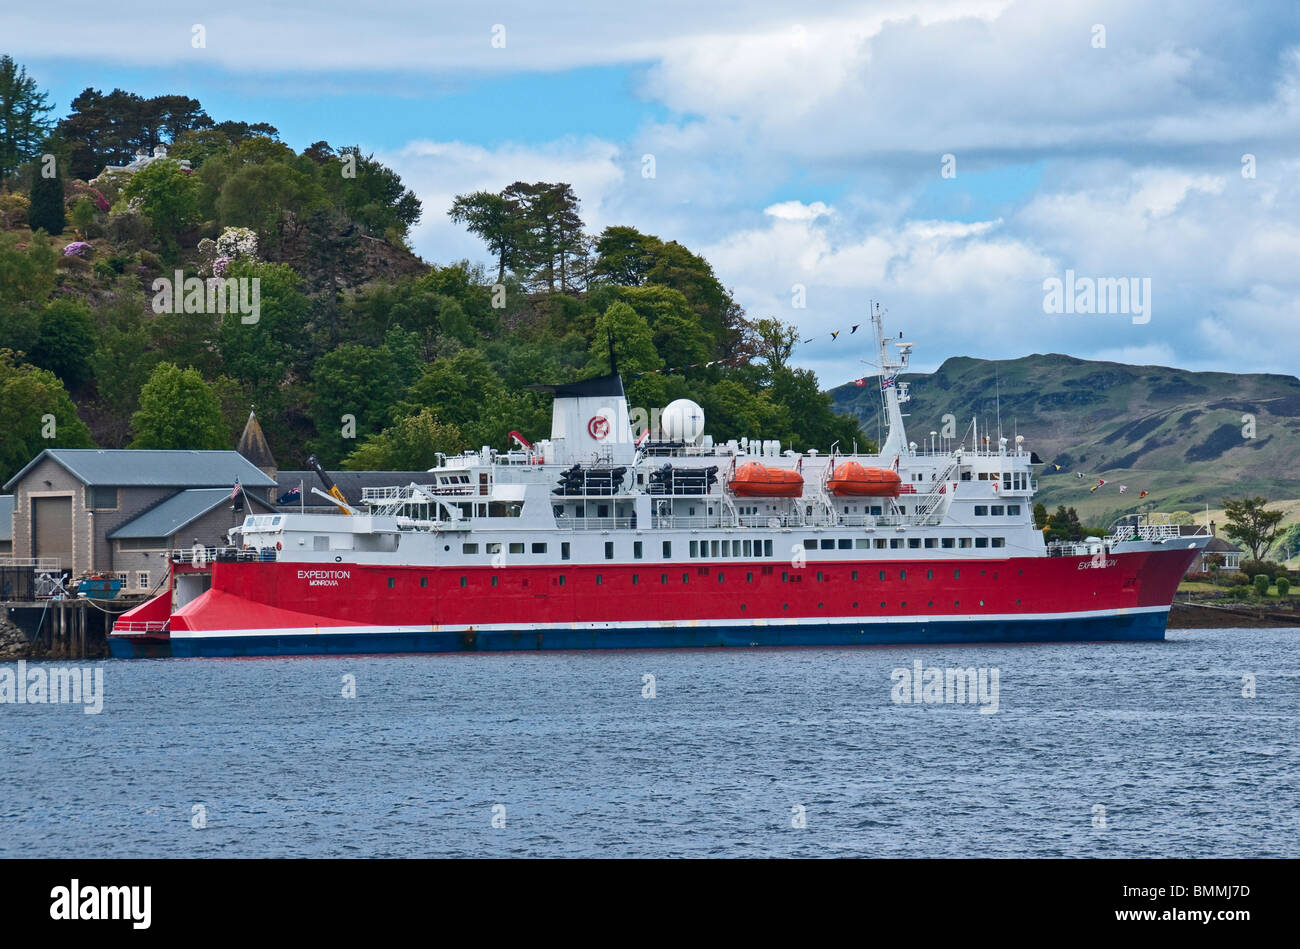 Cruise Ship Ms Expedition Moored In Oban Lorn Scotland Stock Photo ...